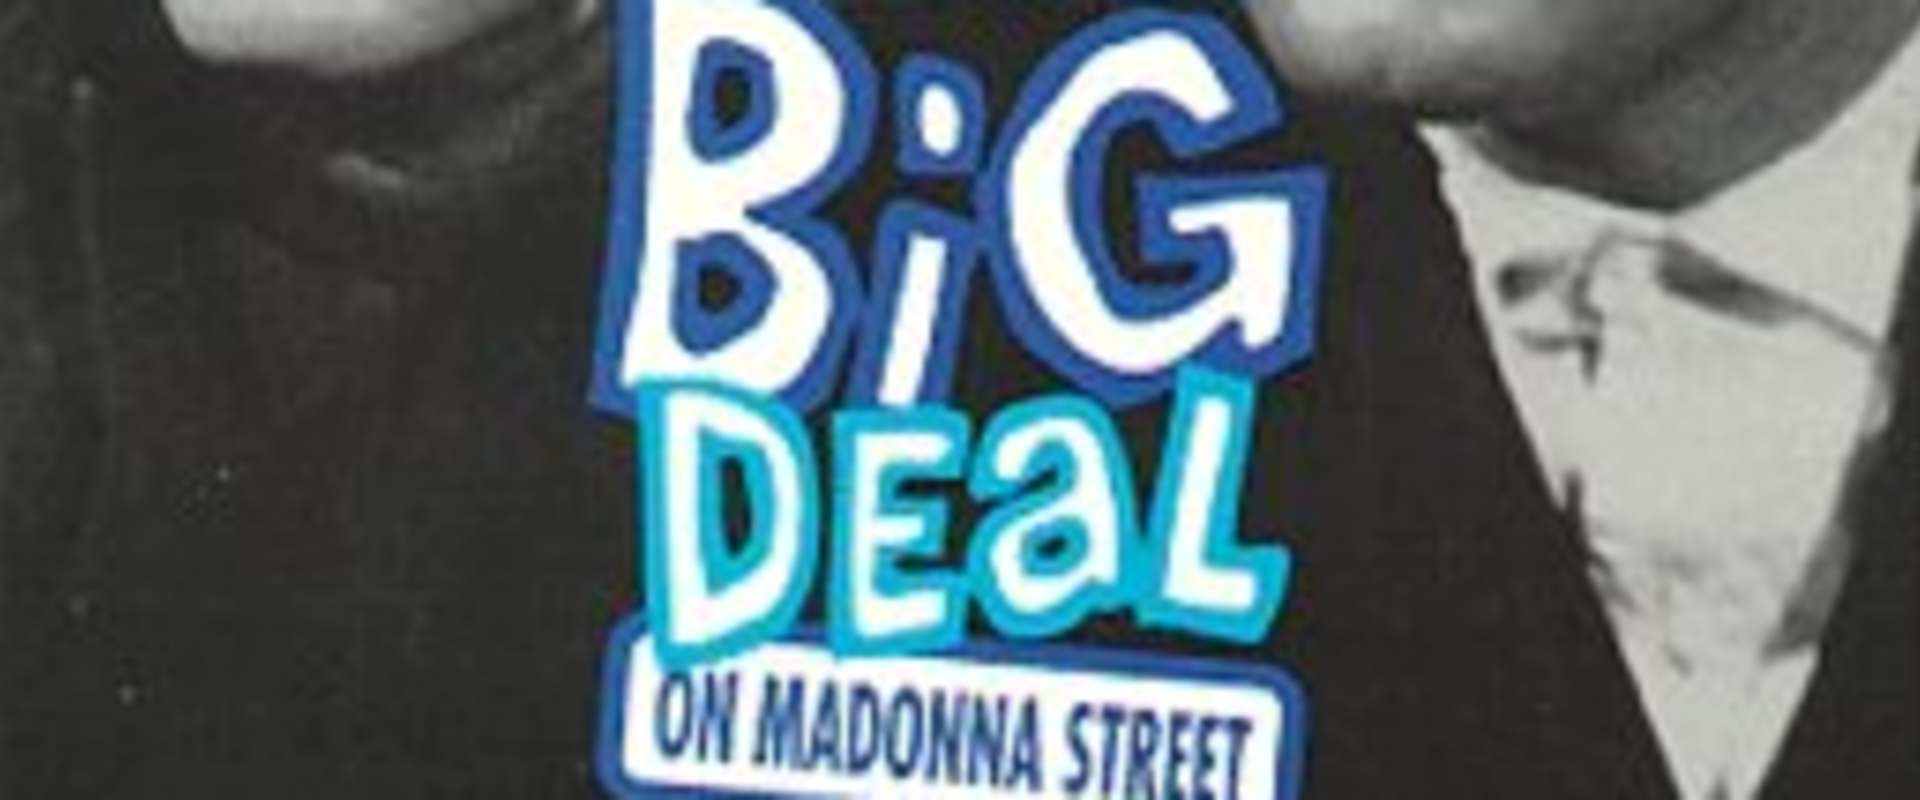 Big Deal on Madonna Street background 1